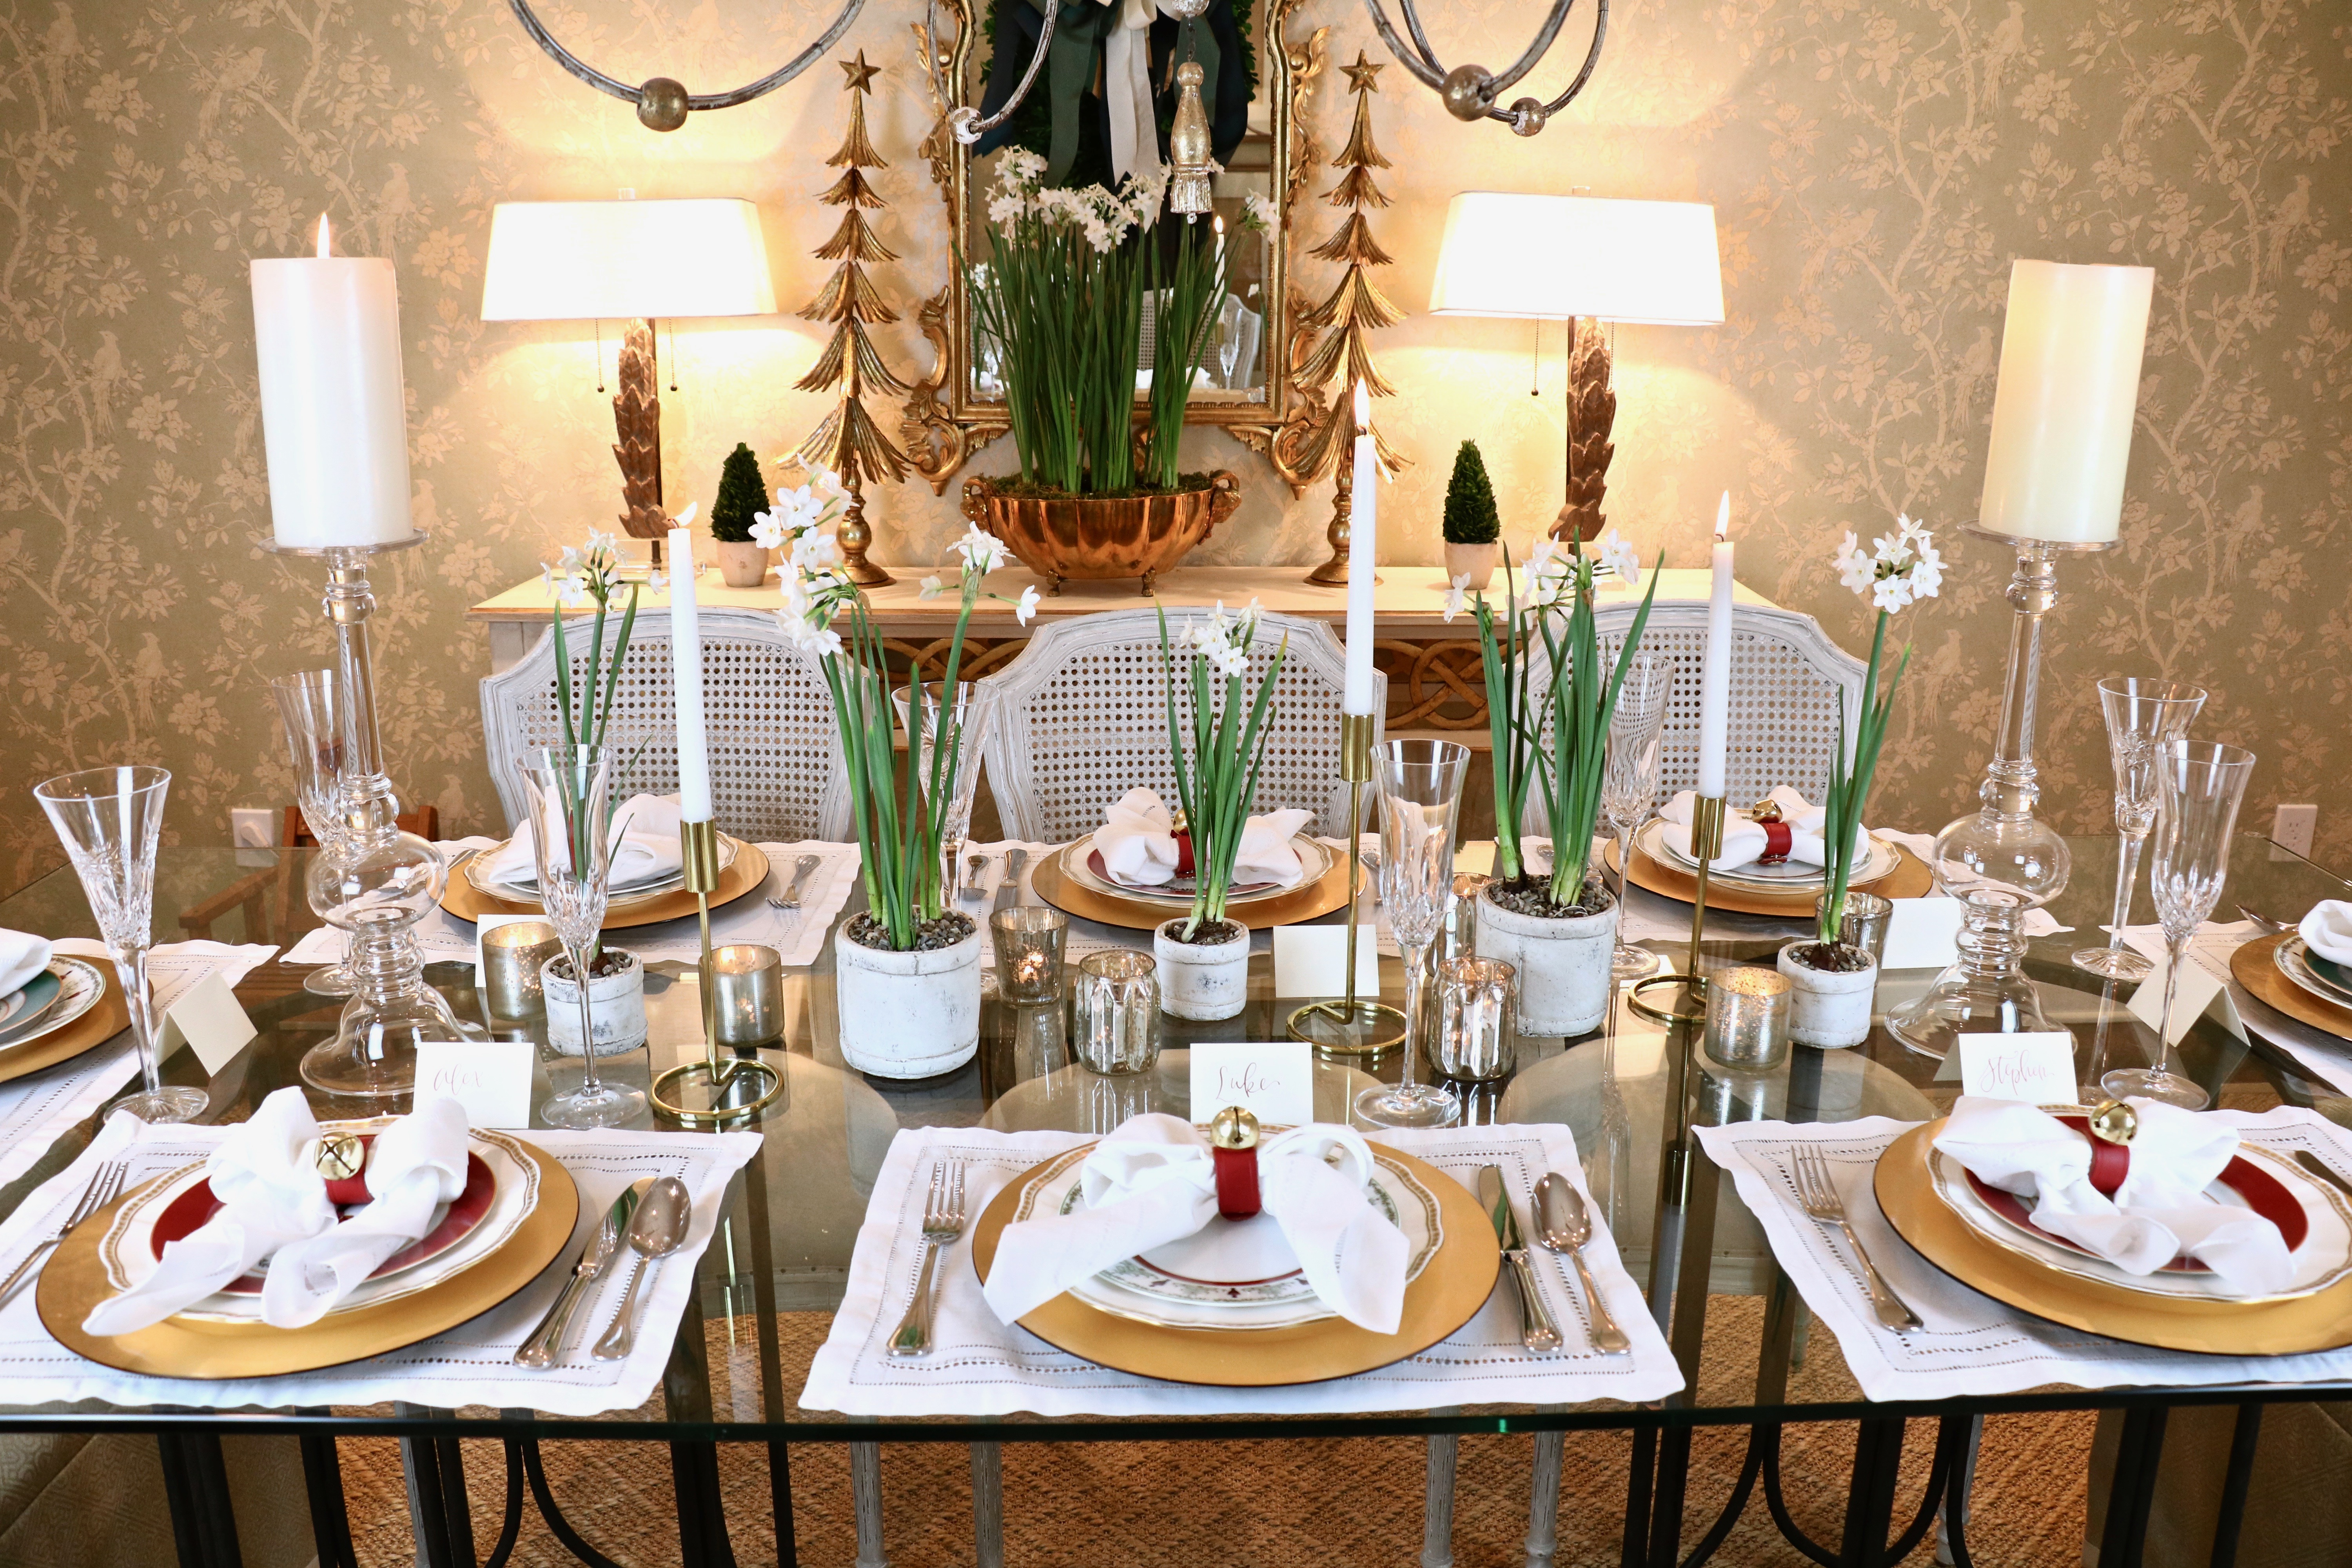 Fresh Christmas tablescape - paperwhites - votives - gold accents - bow napkins - festive - holiday - table setting - red and green